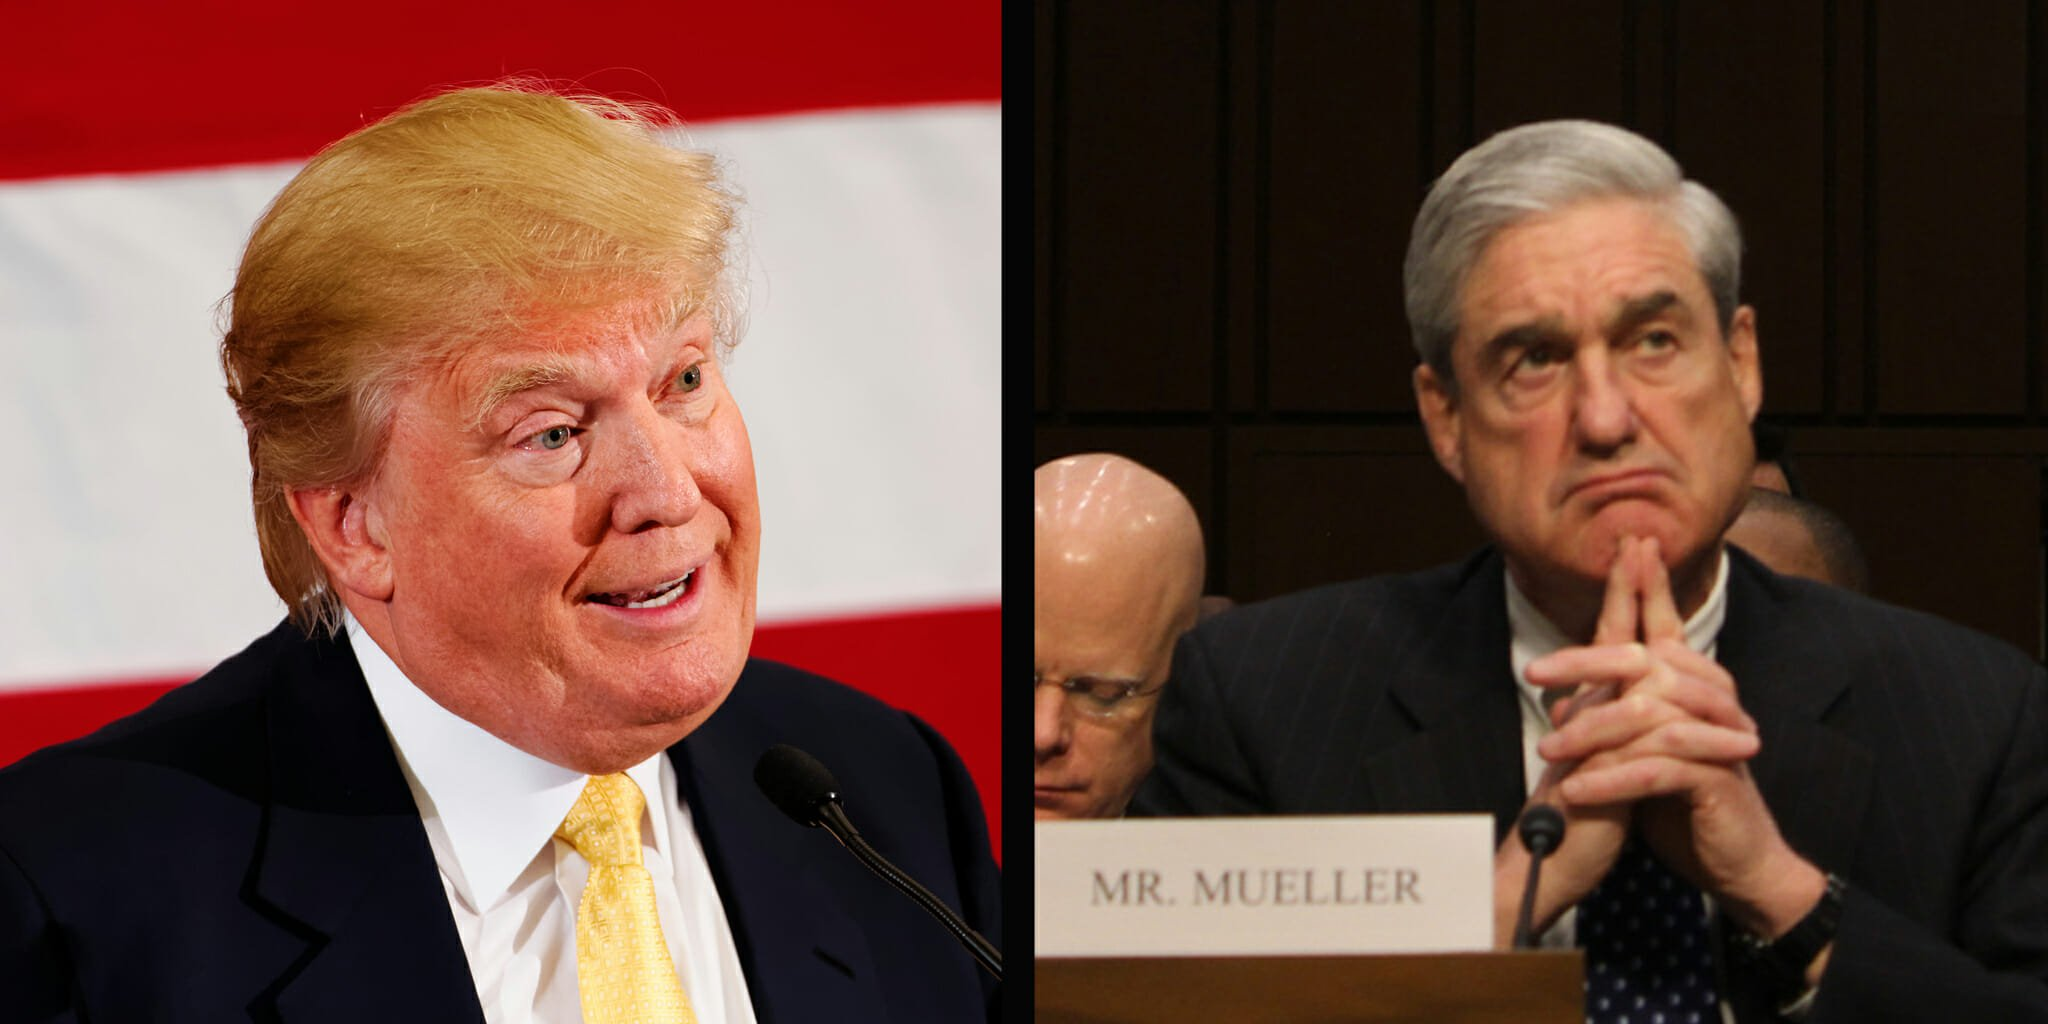 New report reveals detailed questions Robert Mueller plans to ask Trump